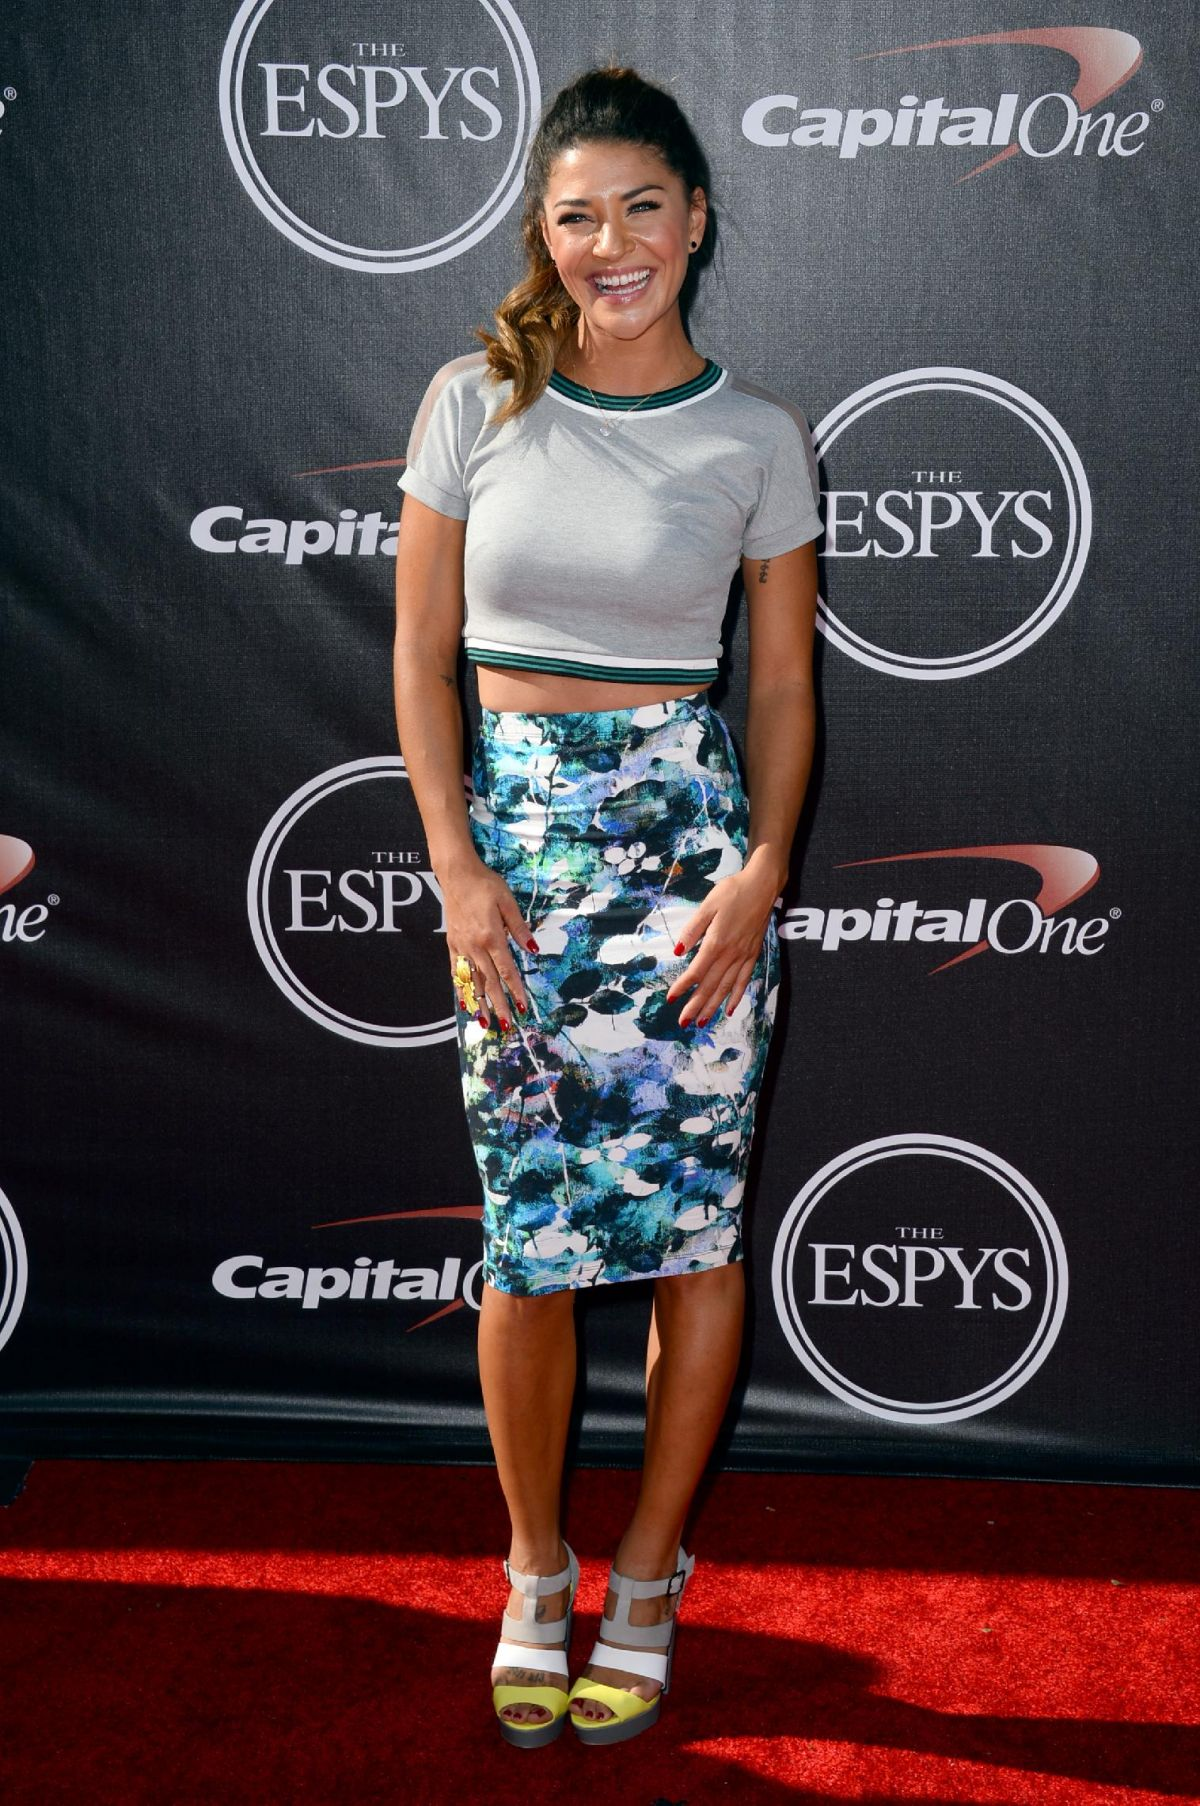 JESSICA SZOHR at 2014 ESPYS Awards in Los Angeles